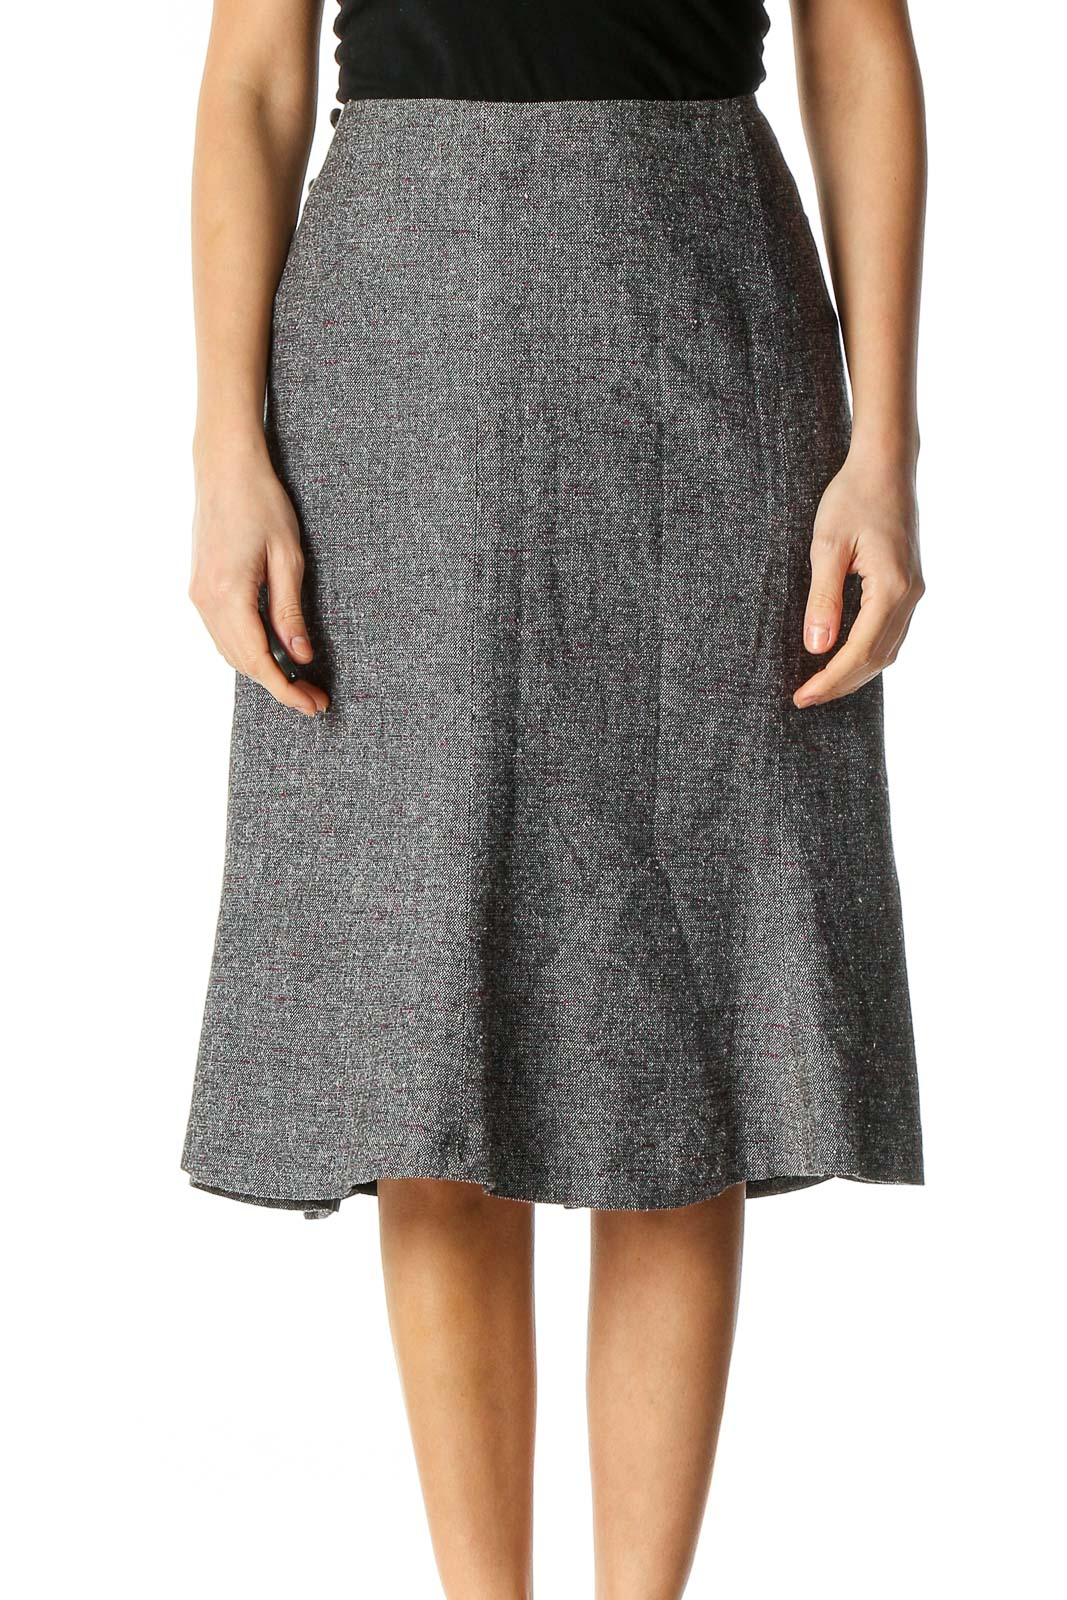 Gray Textured Classic A-Line Skirt Front